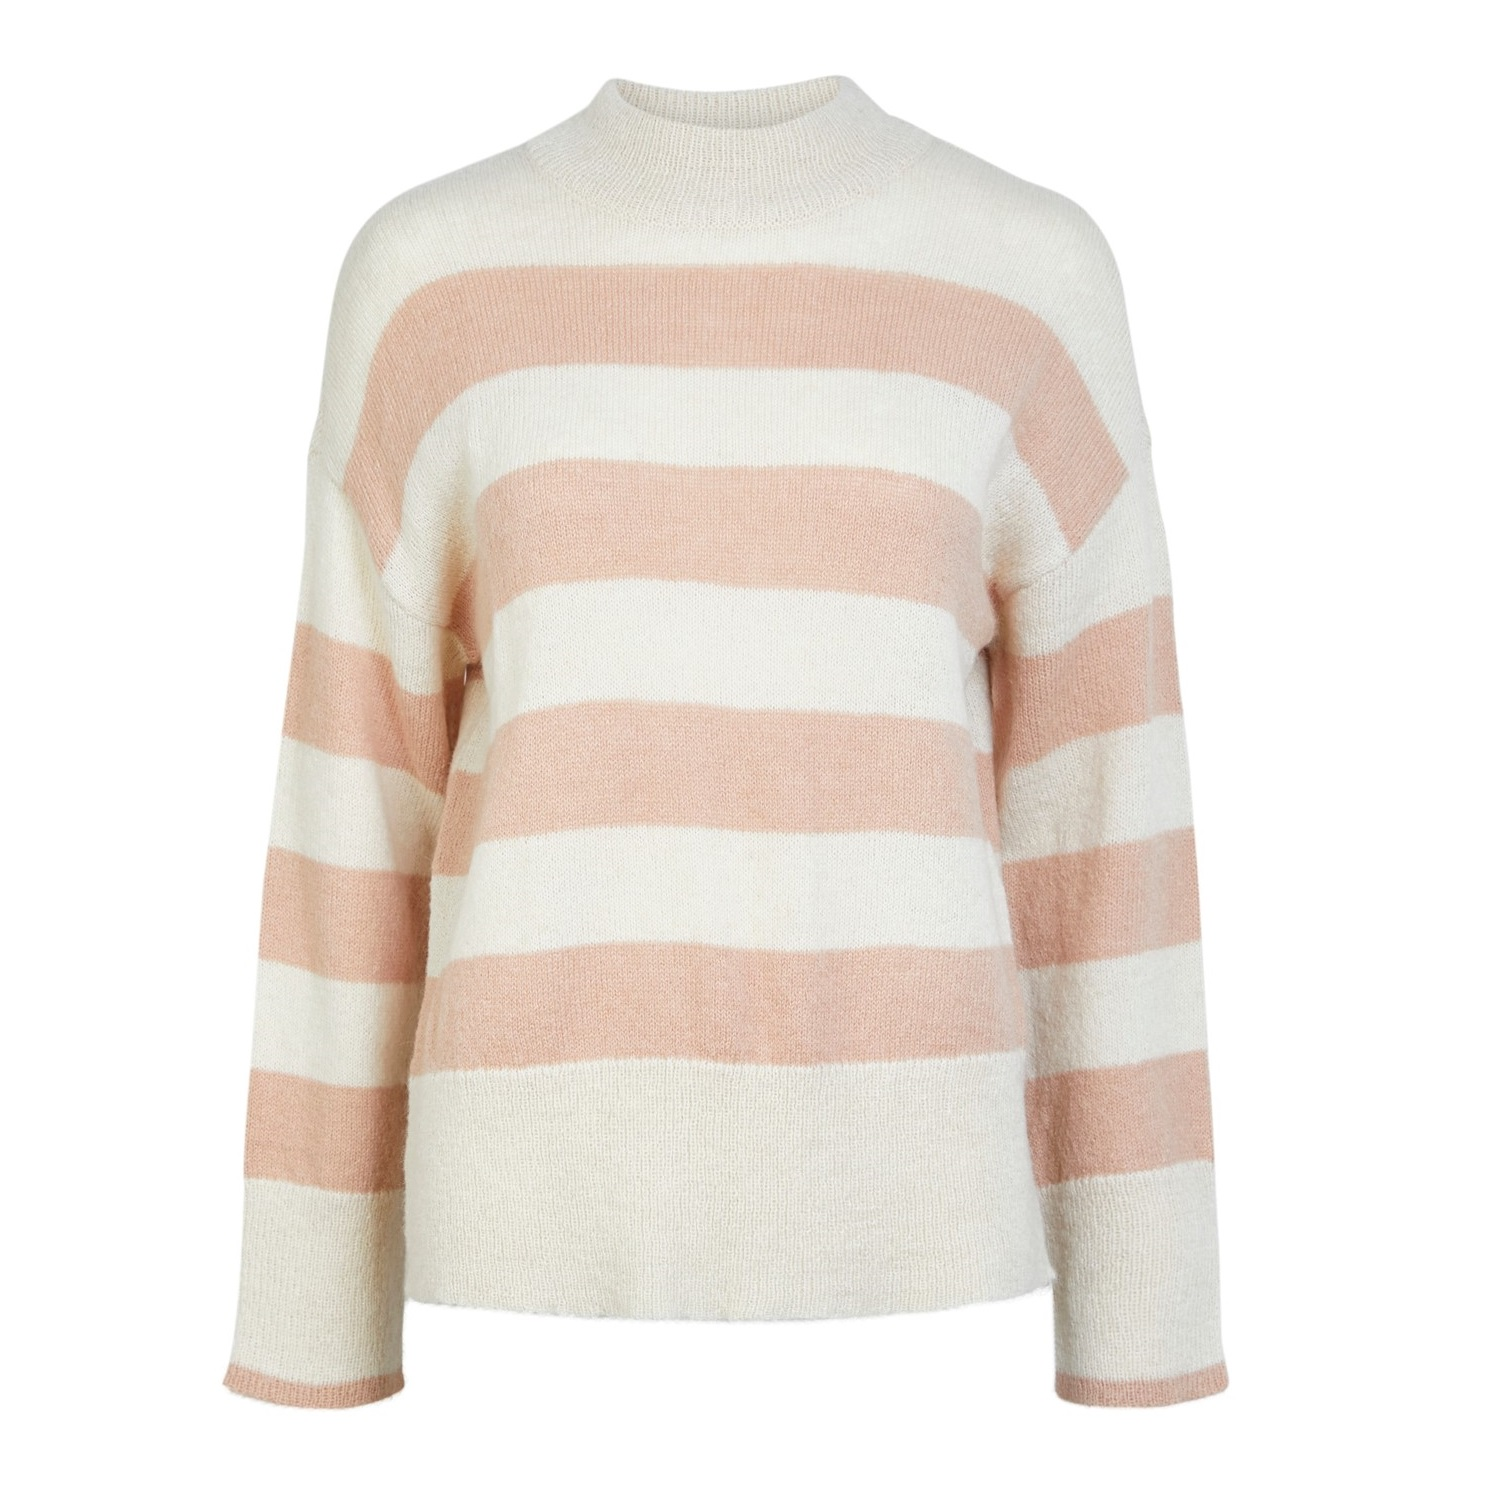 SALE Nova Stripe Knit